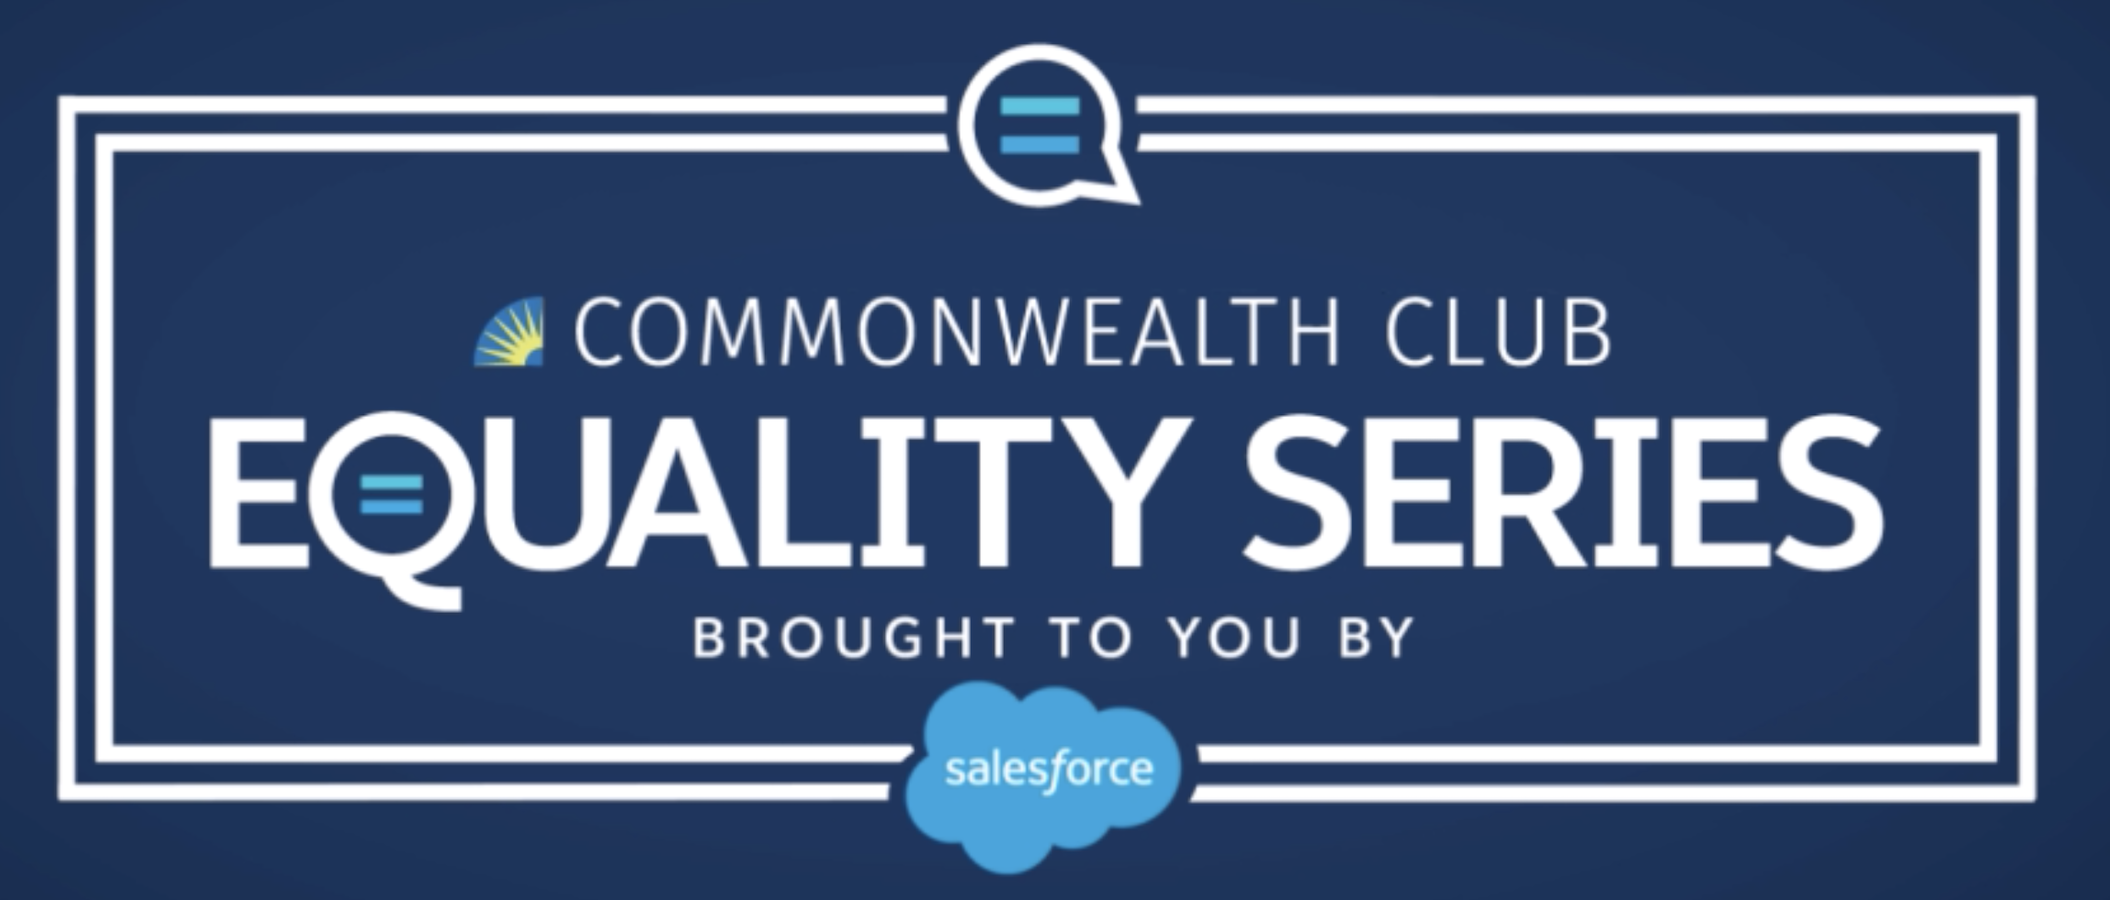 The Commonwealth Club Equality Series, Brought to You by Salesforce